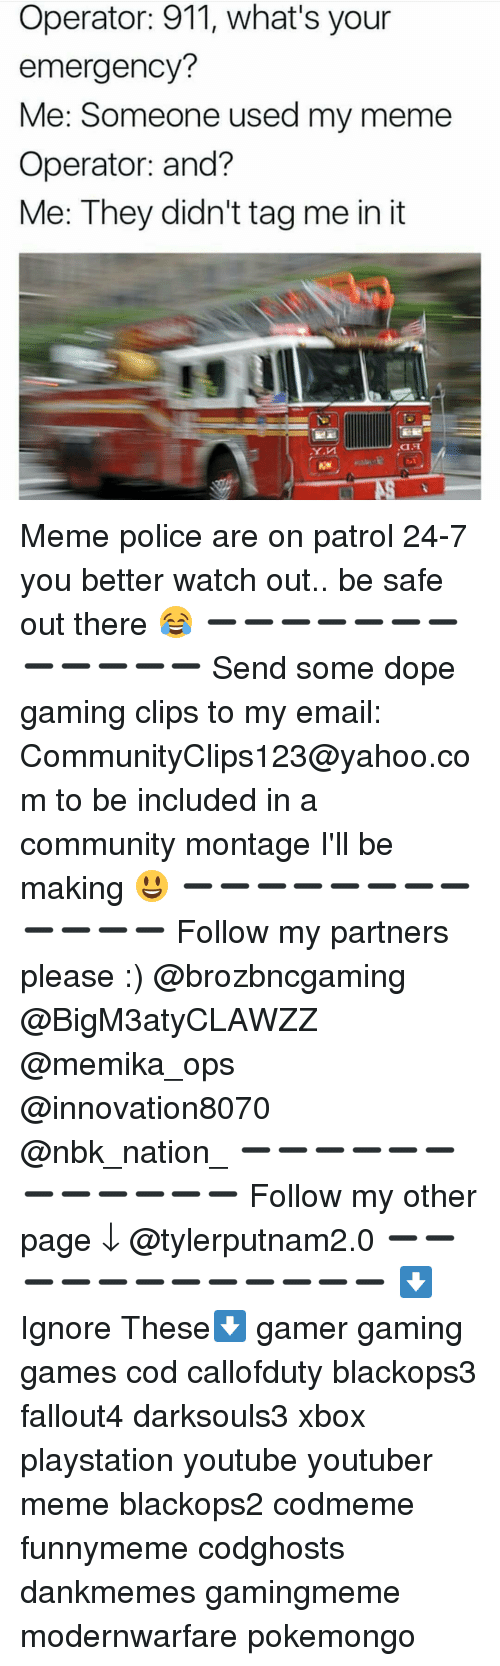 It Meme: Operator: 911, what's your  emergency?  Me: Someone used my meme  Operator: and?  Me: They didn't tag me in it Meme police are on patrol 24-7 you better watch out.. be safe out there 😂 ➖➖➖➖➖➖➖➖➖➖➖➖ Send some dope gaming clips to my email: CommunityClips123@yahoo.com to be included in a community montage I'll be making 😃 ➖➖➖➖➖➖➖➖➖➖➖➖ Follow my partners please :) @brozbncgaming @BigM3atyCLAWZZ @memika_ops @innovation8070 @nbk_nation_ ➖➖➖➖➖➖➖➖➖➖➖➖ Follow my other page ↓ @tylerputnam2.0 ➖➖➖➖➖➖➖➖➖➖➖➖ ⬇Ignore These⬇ gamer gaming games cod callofduty blackops3 fallout4 darksouls3 xbox playstation youtube youtuber meme blackops2 codmeme funnymeme codghosts dankmemes gamingmeme modernwarfare pokemongo